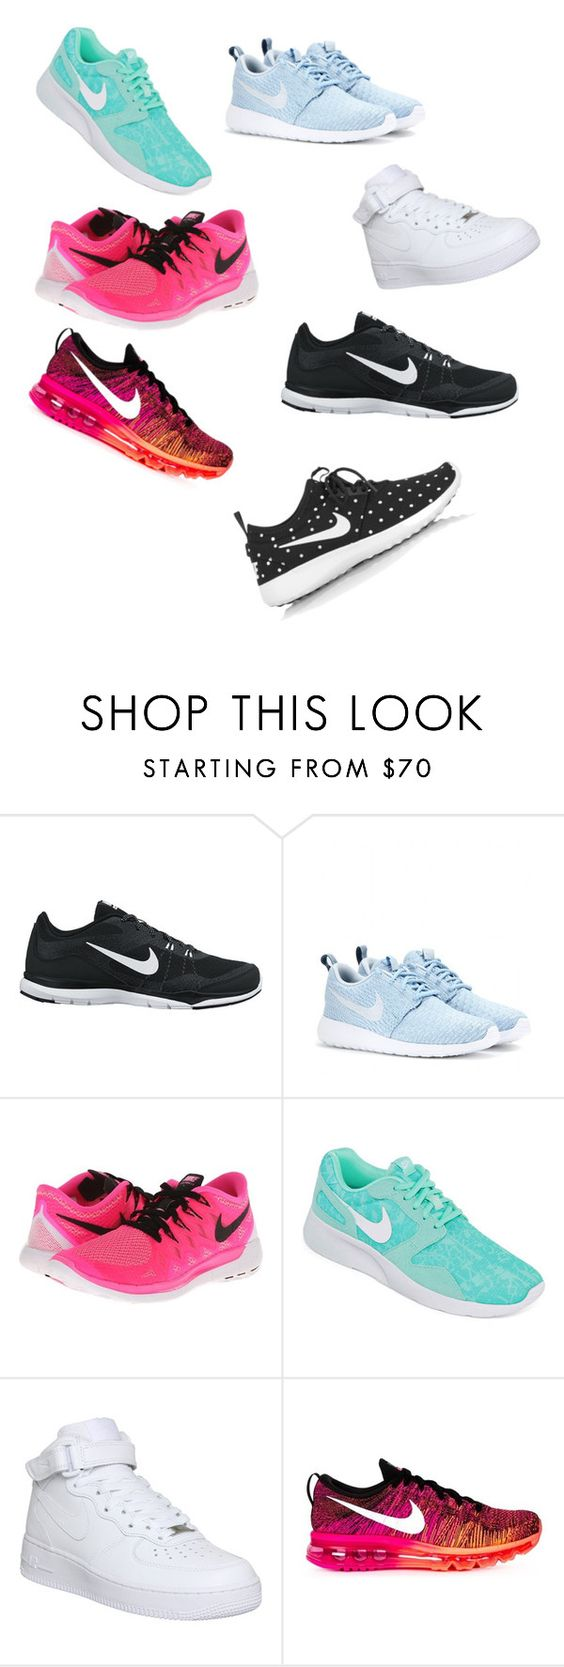 """""""I know this isn't an outfit but I like Nike so yeah"""" by bellabunny24 ❤ liked on Polyvore featuring interior, interiors, interior design, home, home decor, interior decorating and NIKE"""